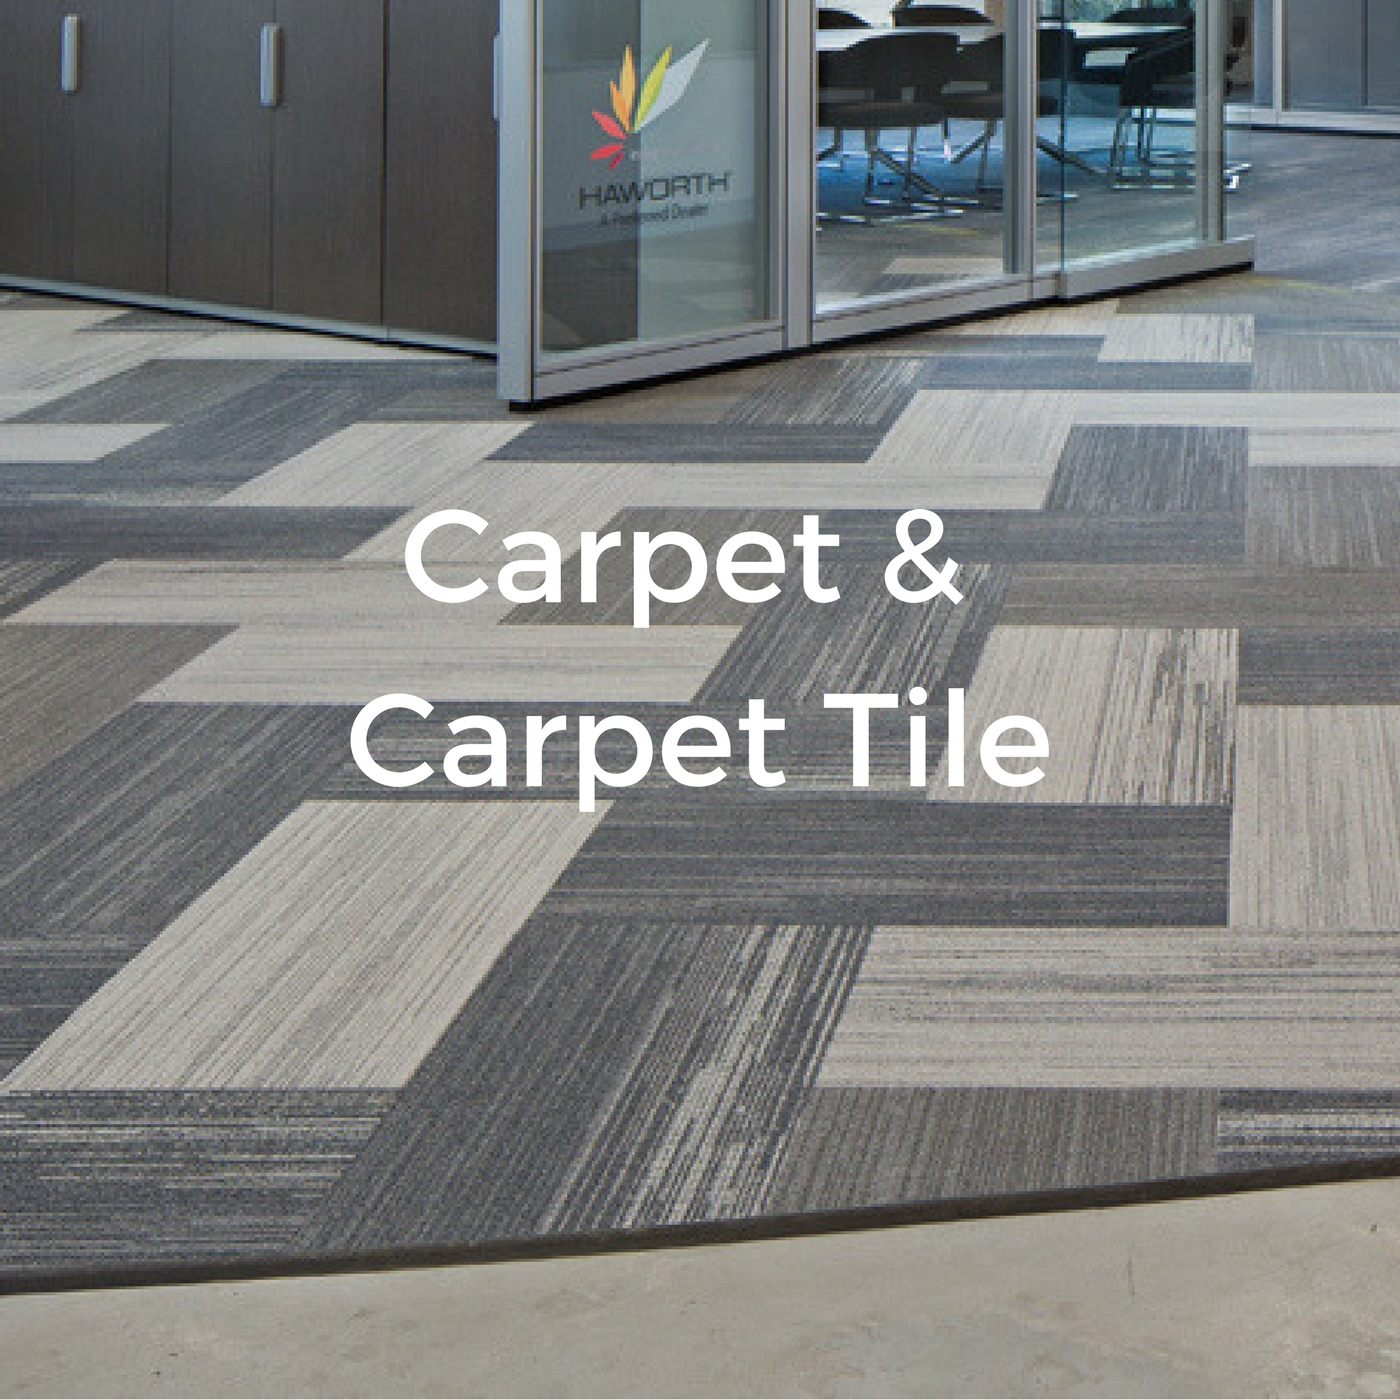 Copy of Commercial Carpet Installation in San Francisco, CA - Flooring Solutions, Inc.